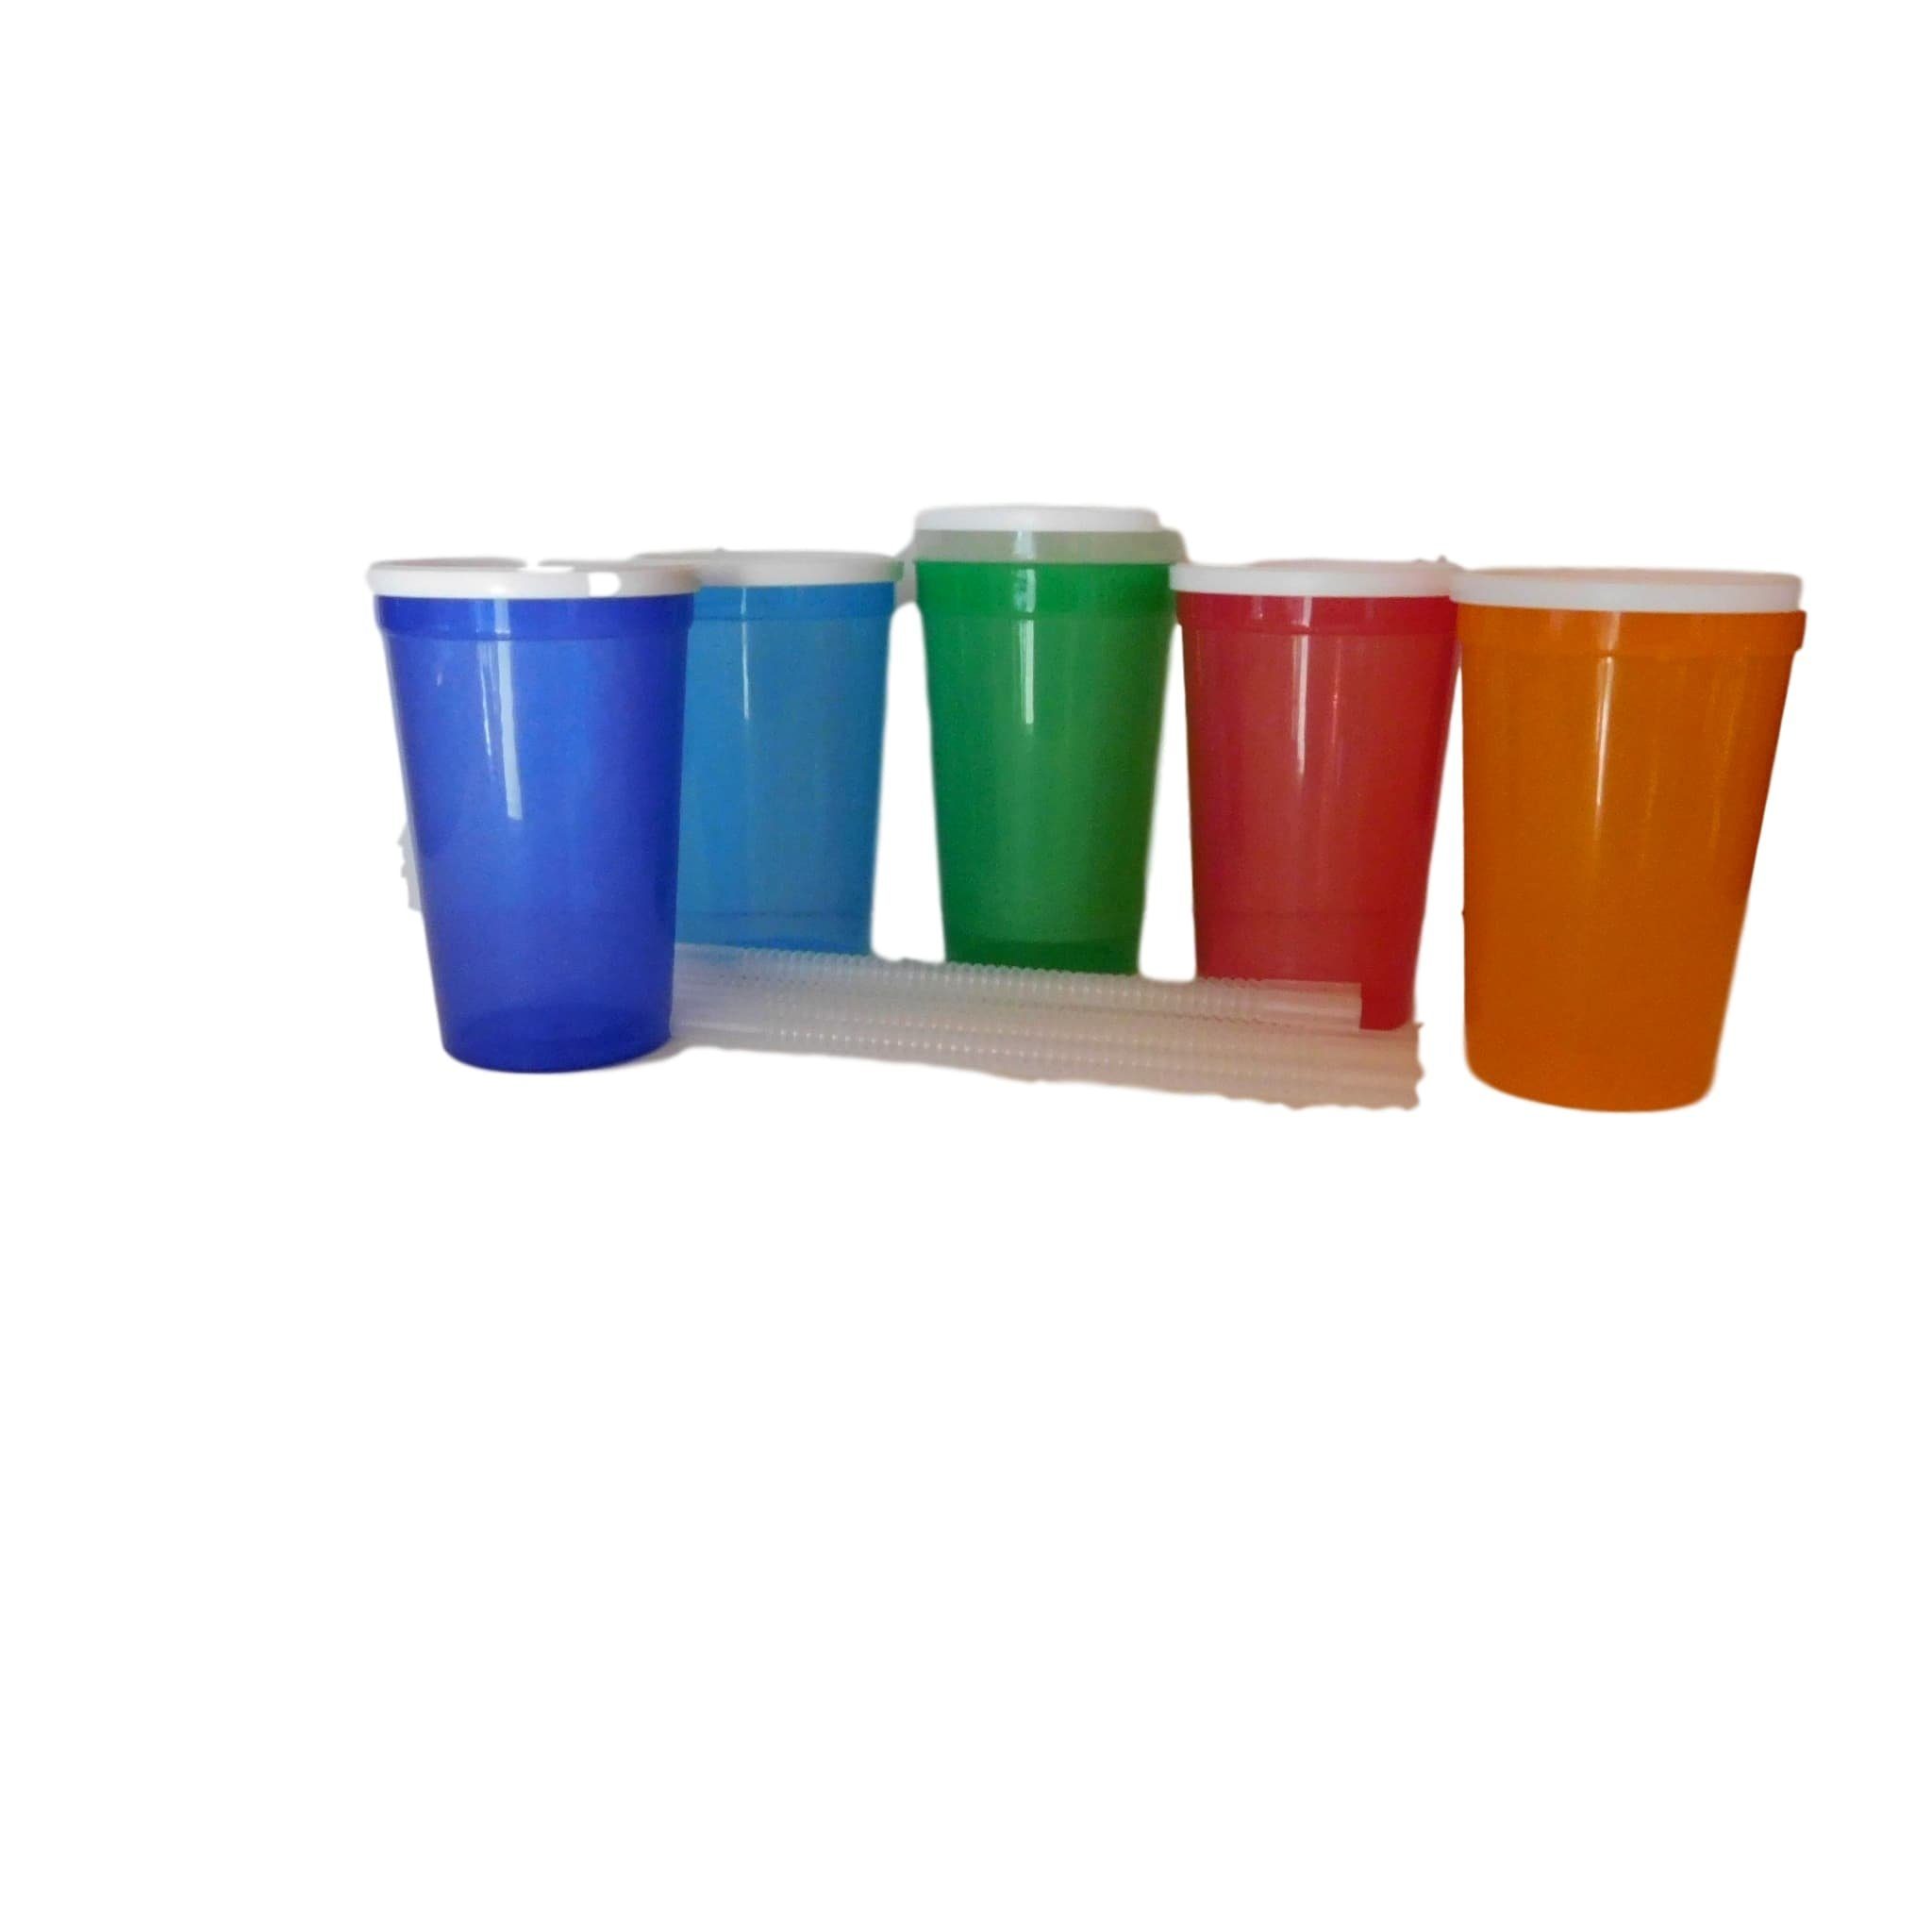 Talisman, Large 20 Ounce Plastic Drinking Glasses, Lids and Straws, 14 Pack, Mix Translucent Colors